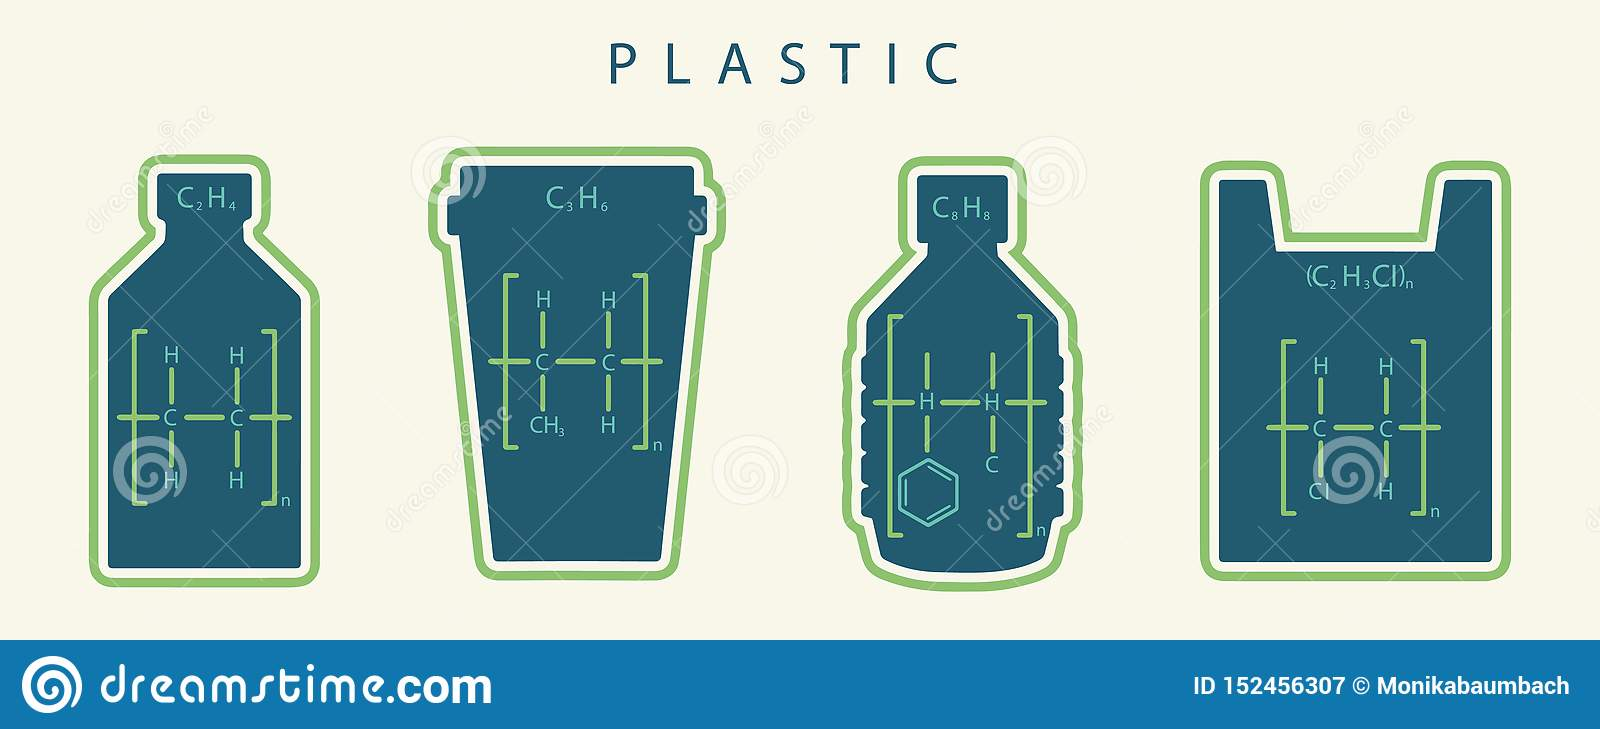 Chemical Formula Of Common Kinds Of Plastic In Shape Of Disposable